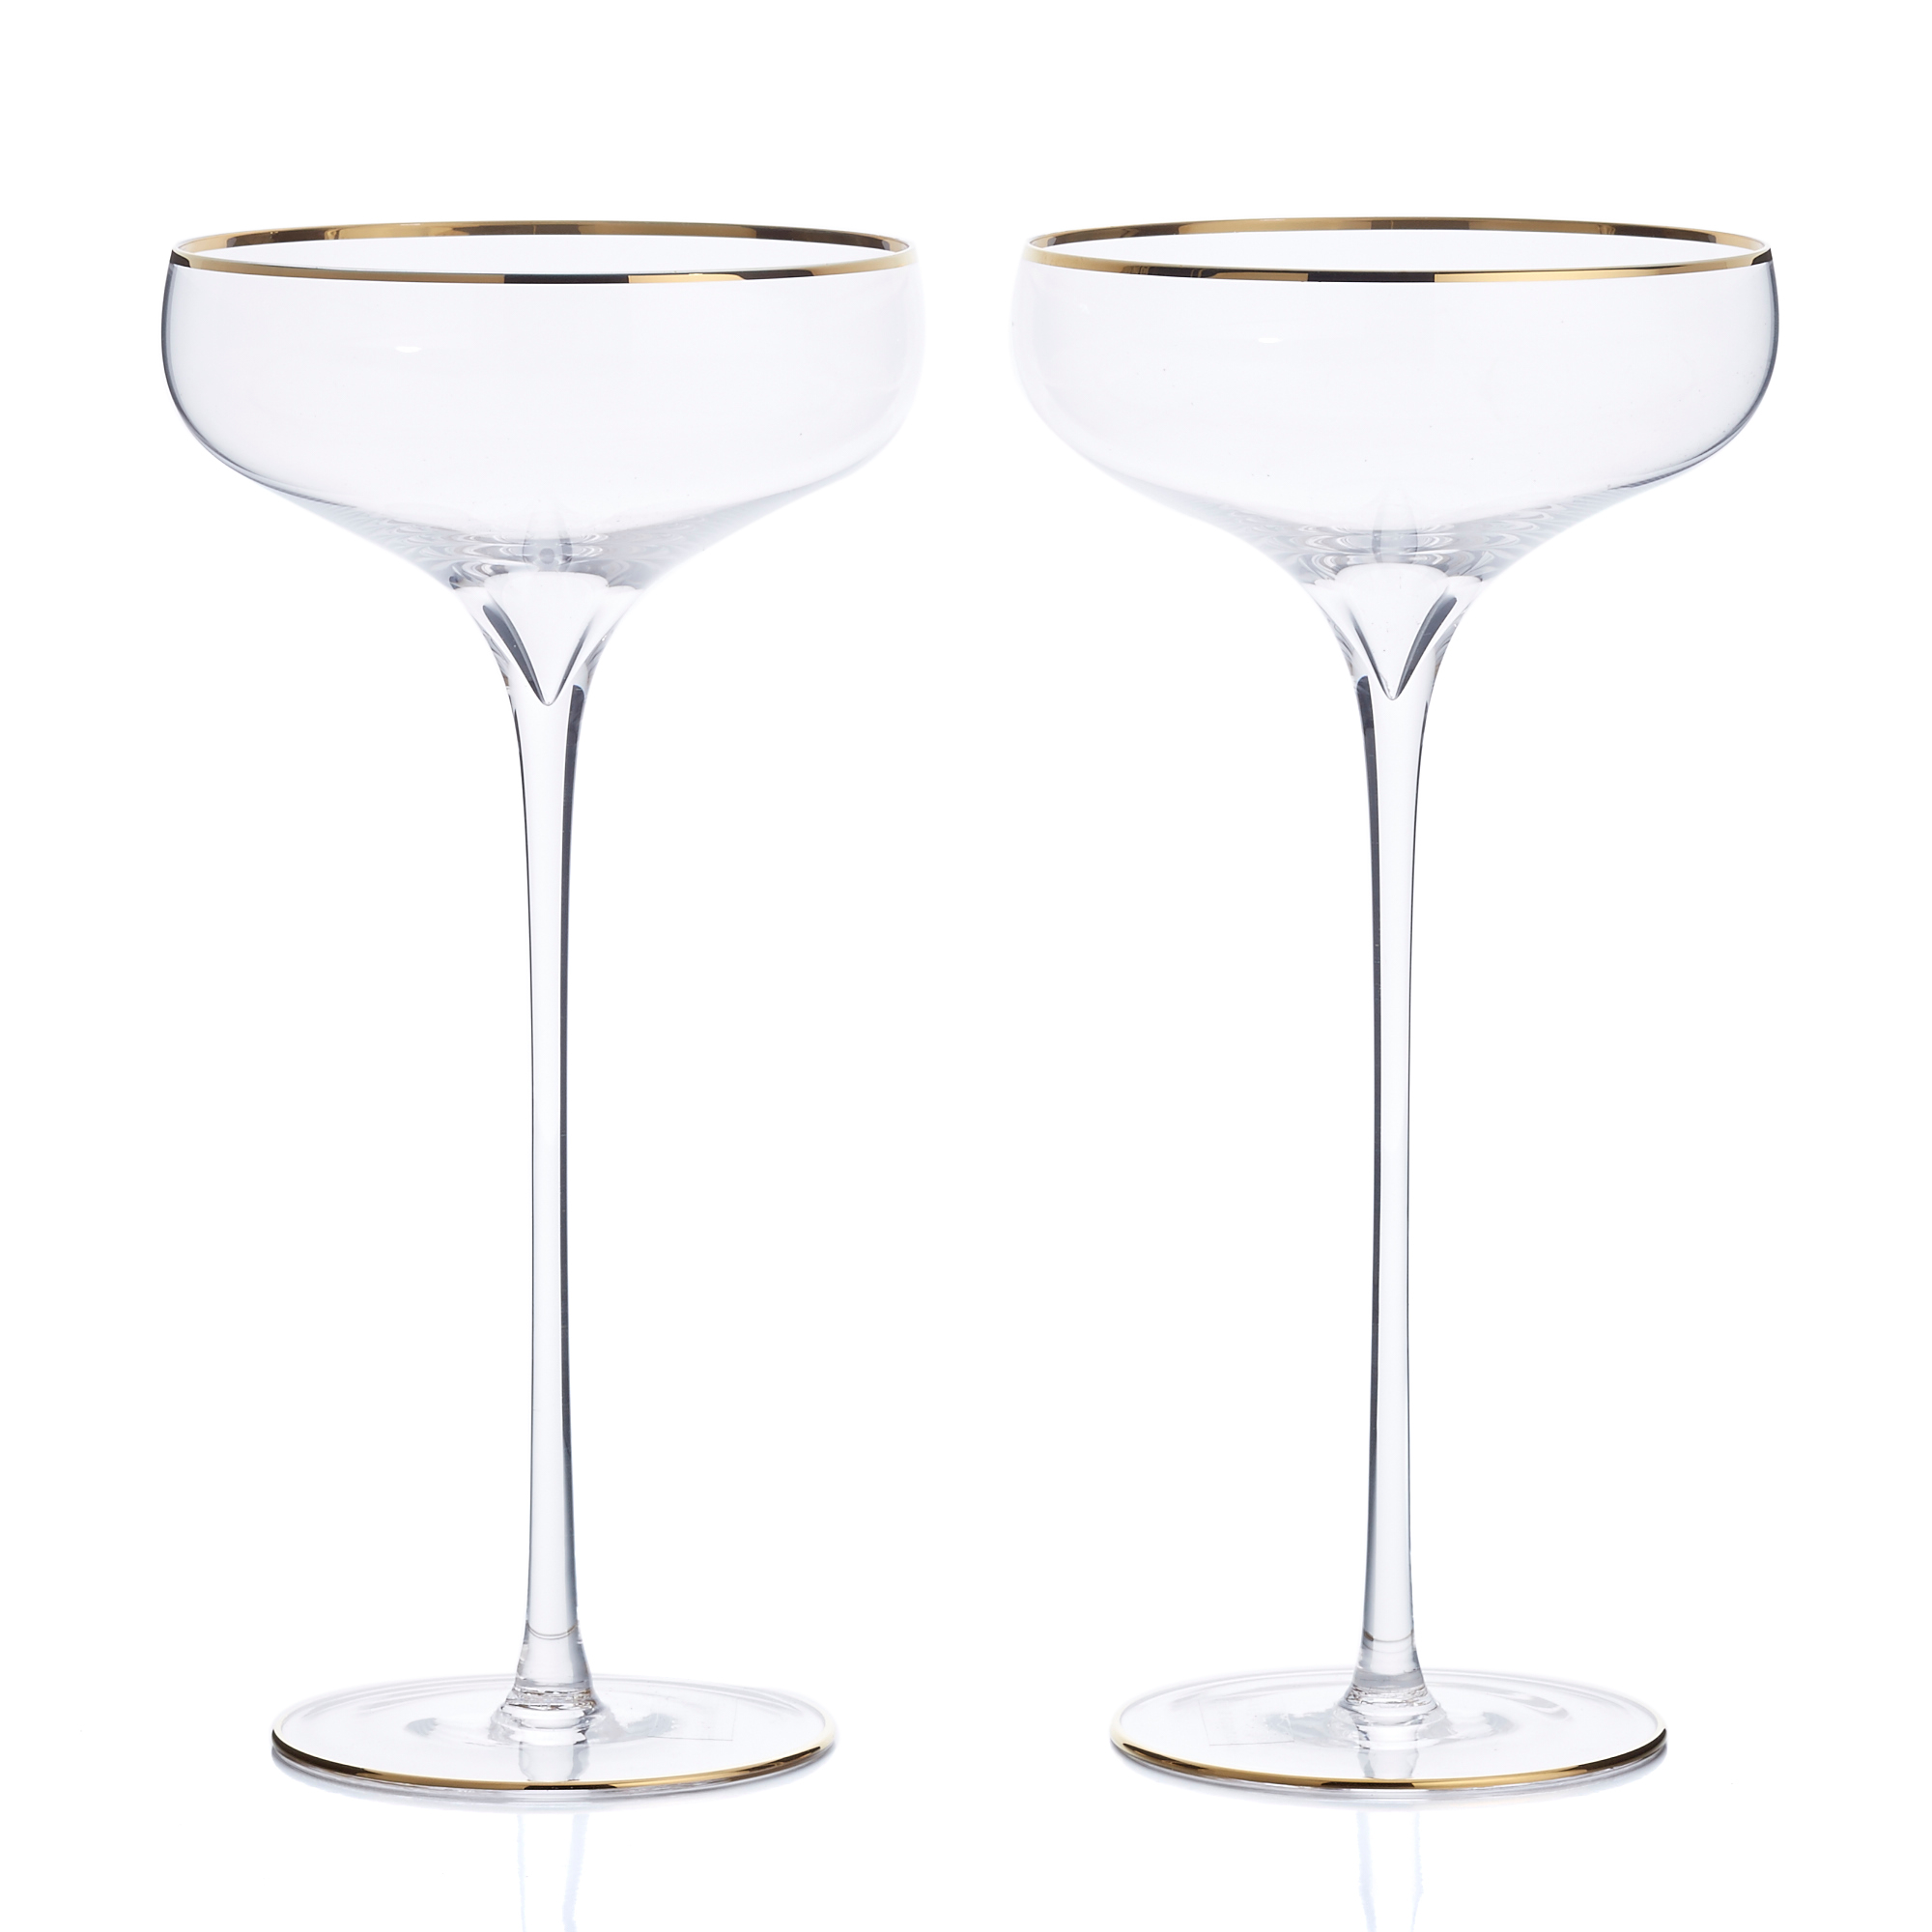 Lsa International Gold Celebrate Champagne Saucers Glasses, Set of 2